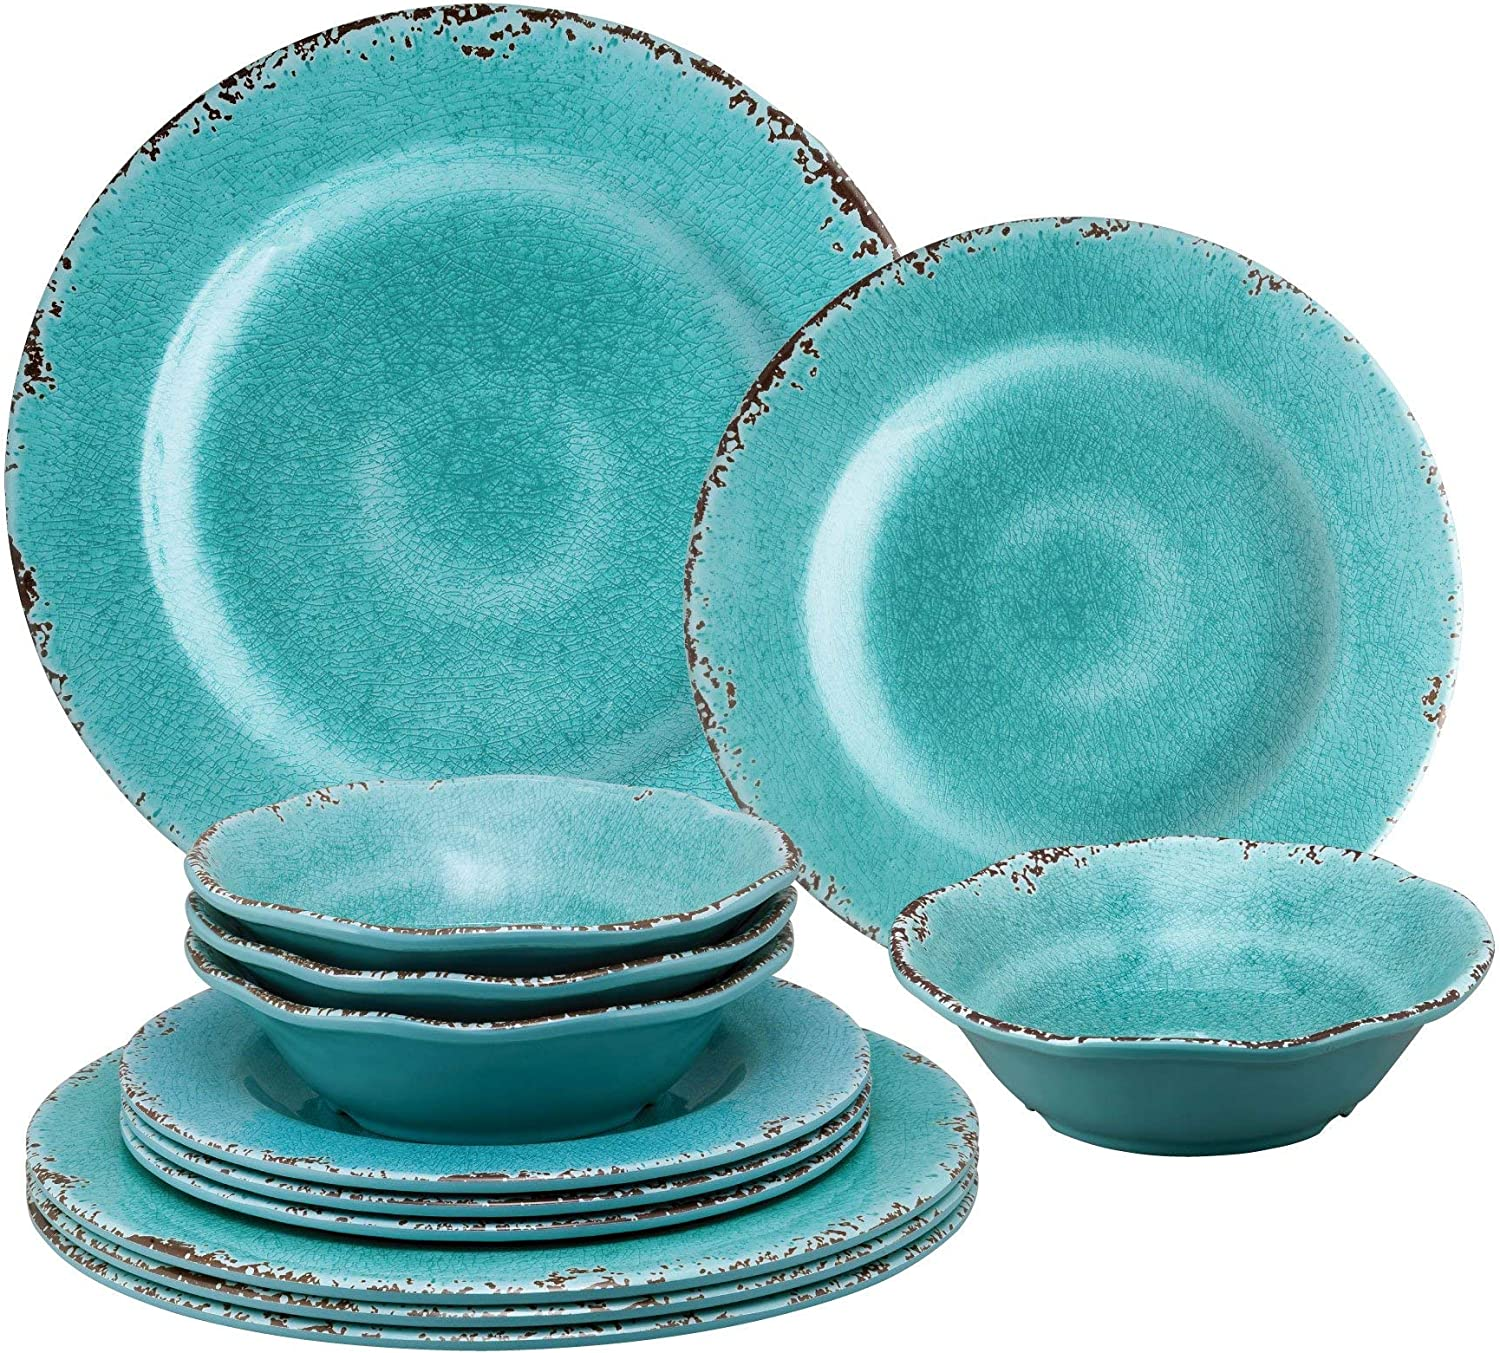 Gourmet Art 12-Piece Crackle Heavyweight and Durable Melamine Dinnerware Set, Turquoise, Service for 4. Includes Dinner Plates, Salad Plates and Bowls. for Indoors Outdoors Use and Everyday Use